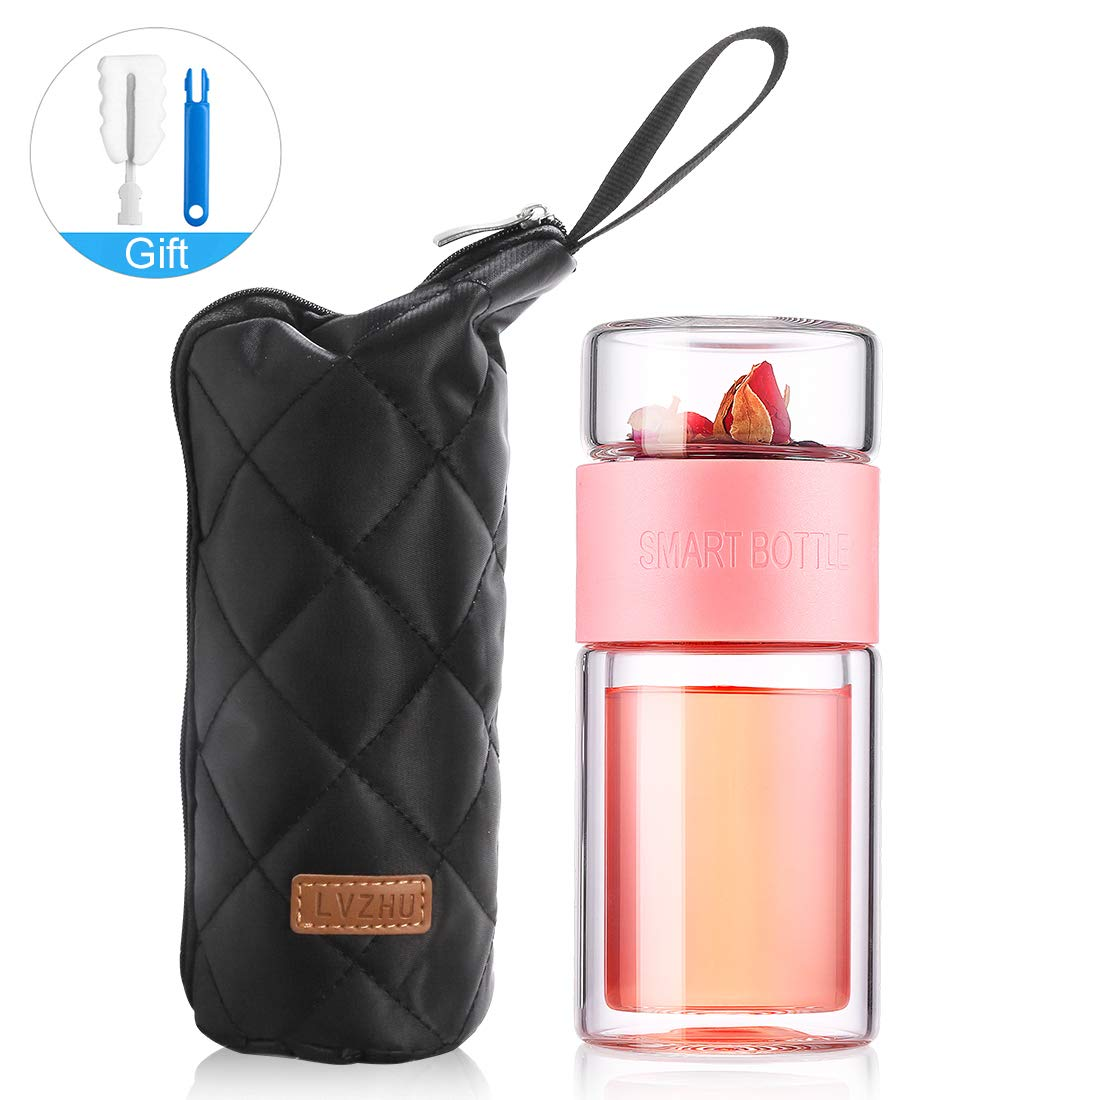 ONEISALL Glass Tea Infuser - 7oz Travel Mug with Strainer, Tea Tumbler Bottle for Loose Leaf Tea, Fruit and Cold Brew Coffee (Pink)